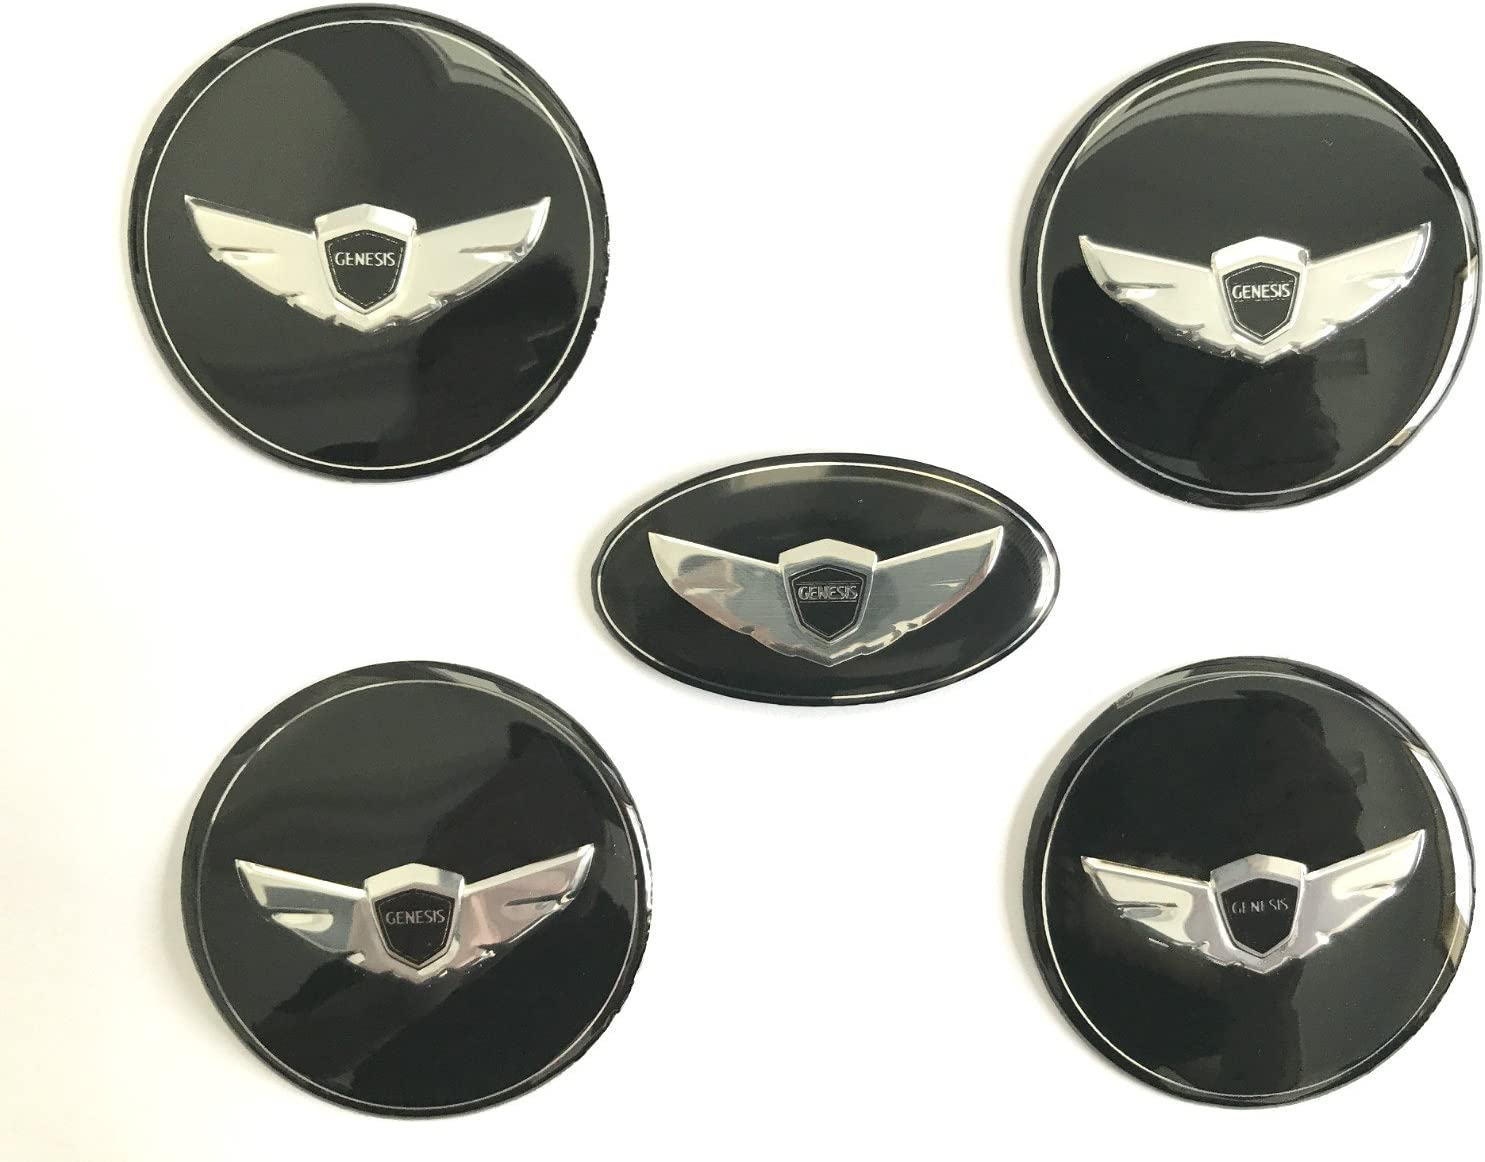 Rim Center Caps Stickers Turbo Kit Emblem Badges 5 Pieces Exotic Store 5 Pieces 2010-2017 Modified Fit for Hyundai Genesis Coupe Wing Logo Steering Wheel